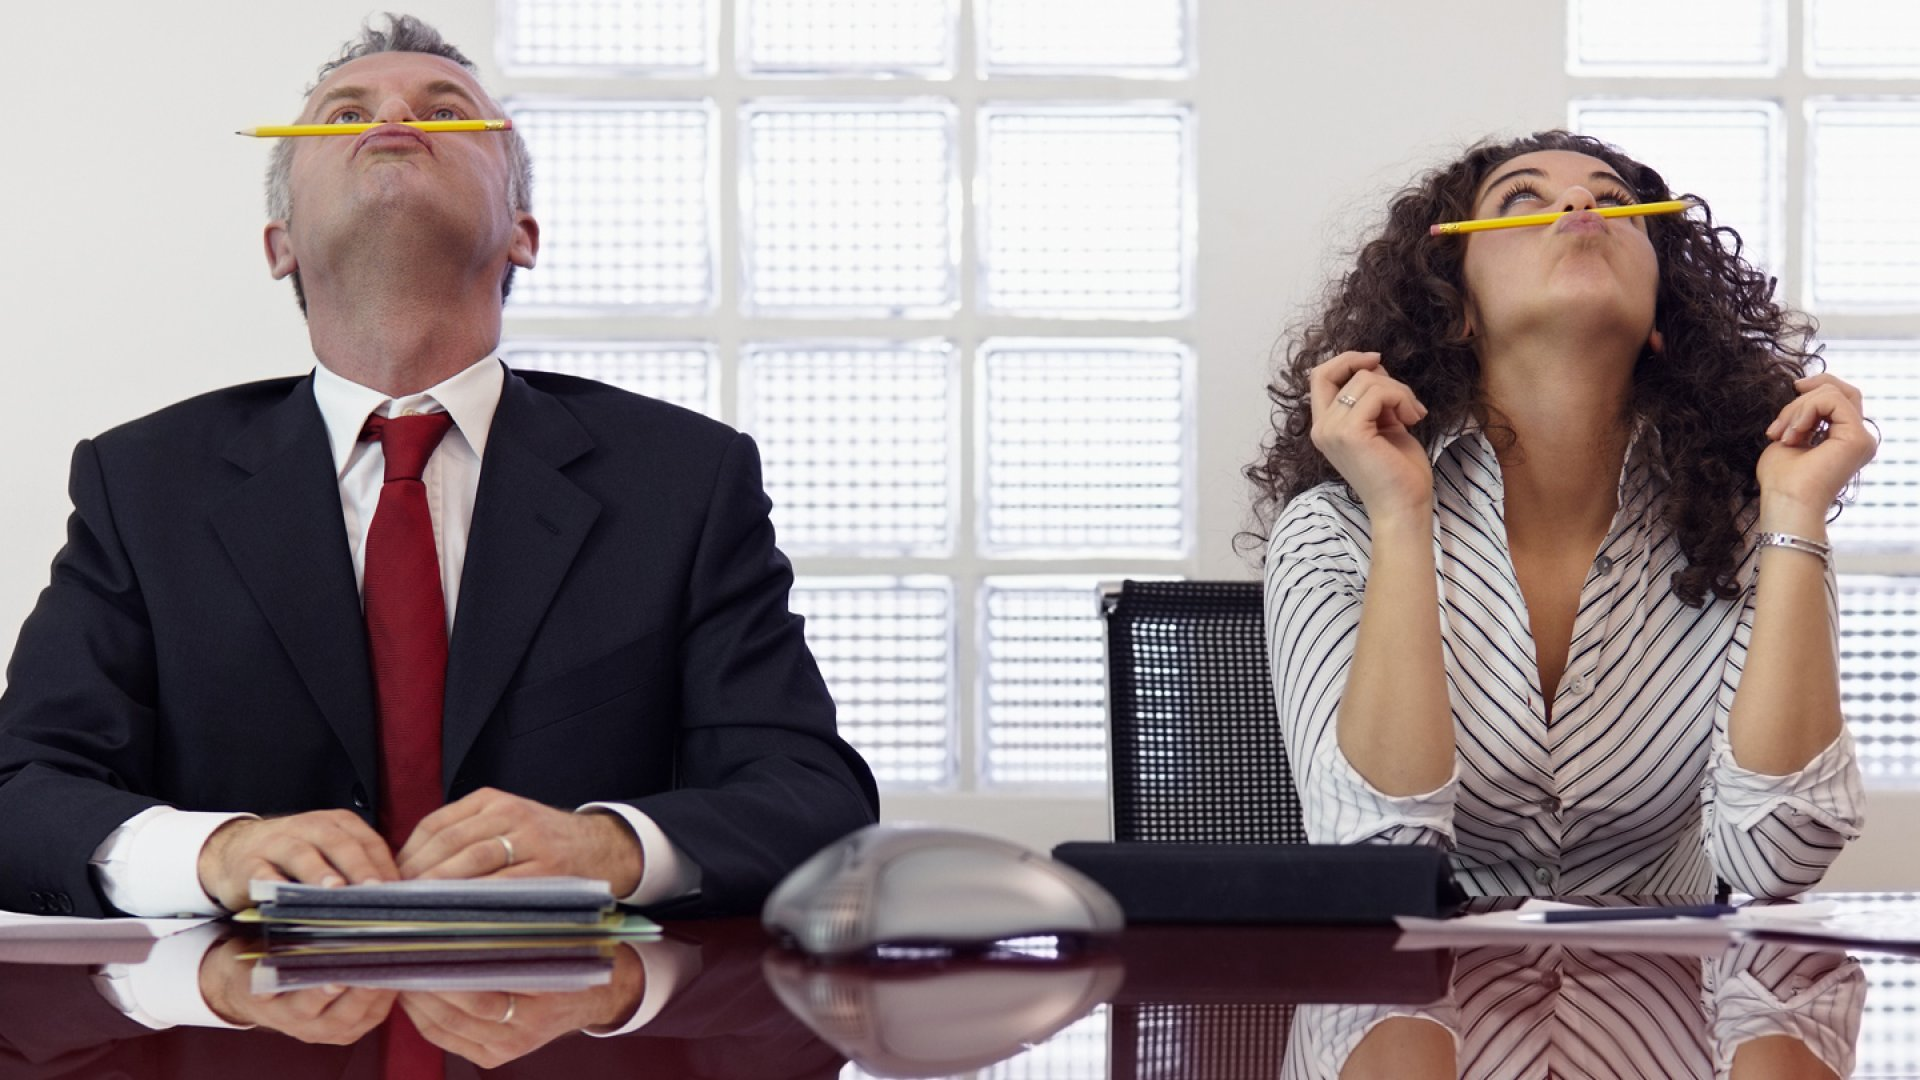 What Are Your Biggest Time Wasters at Work?